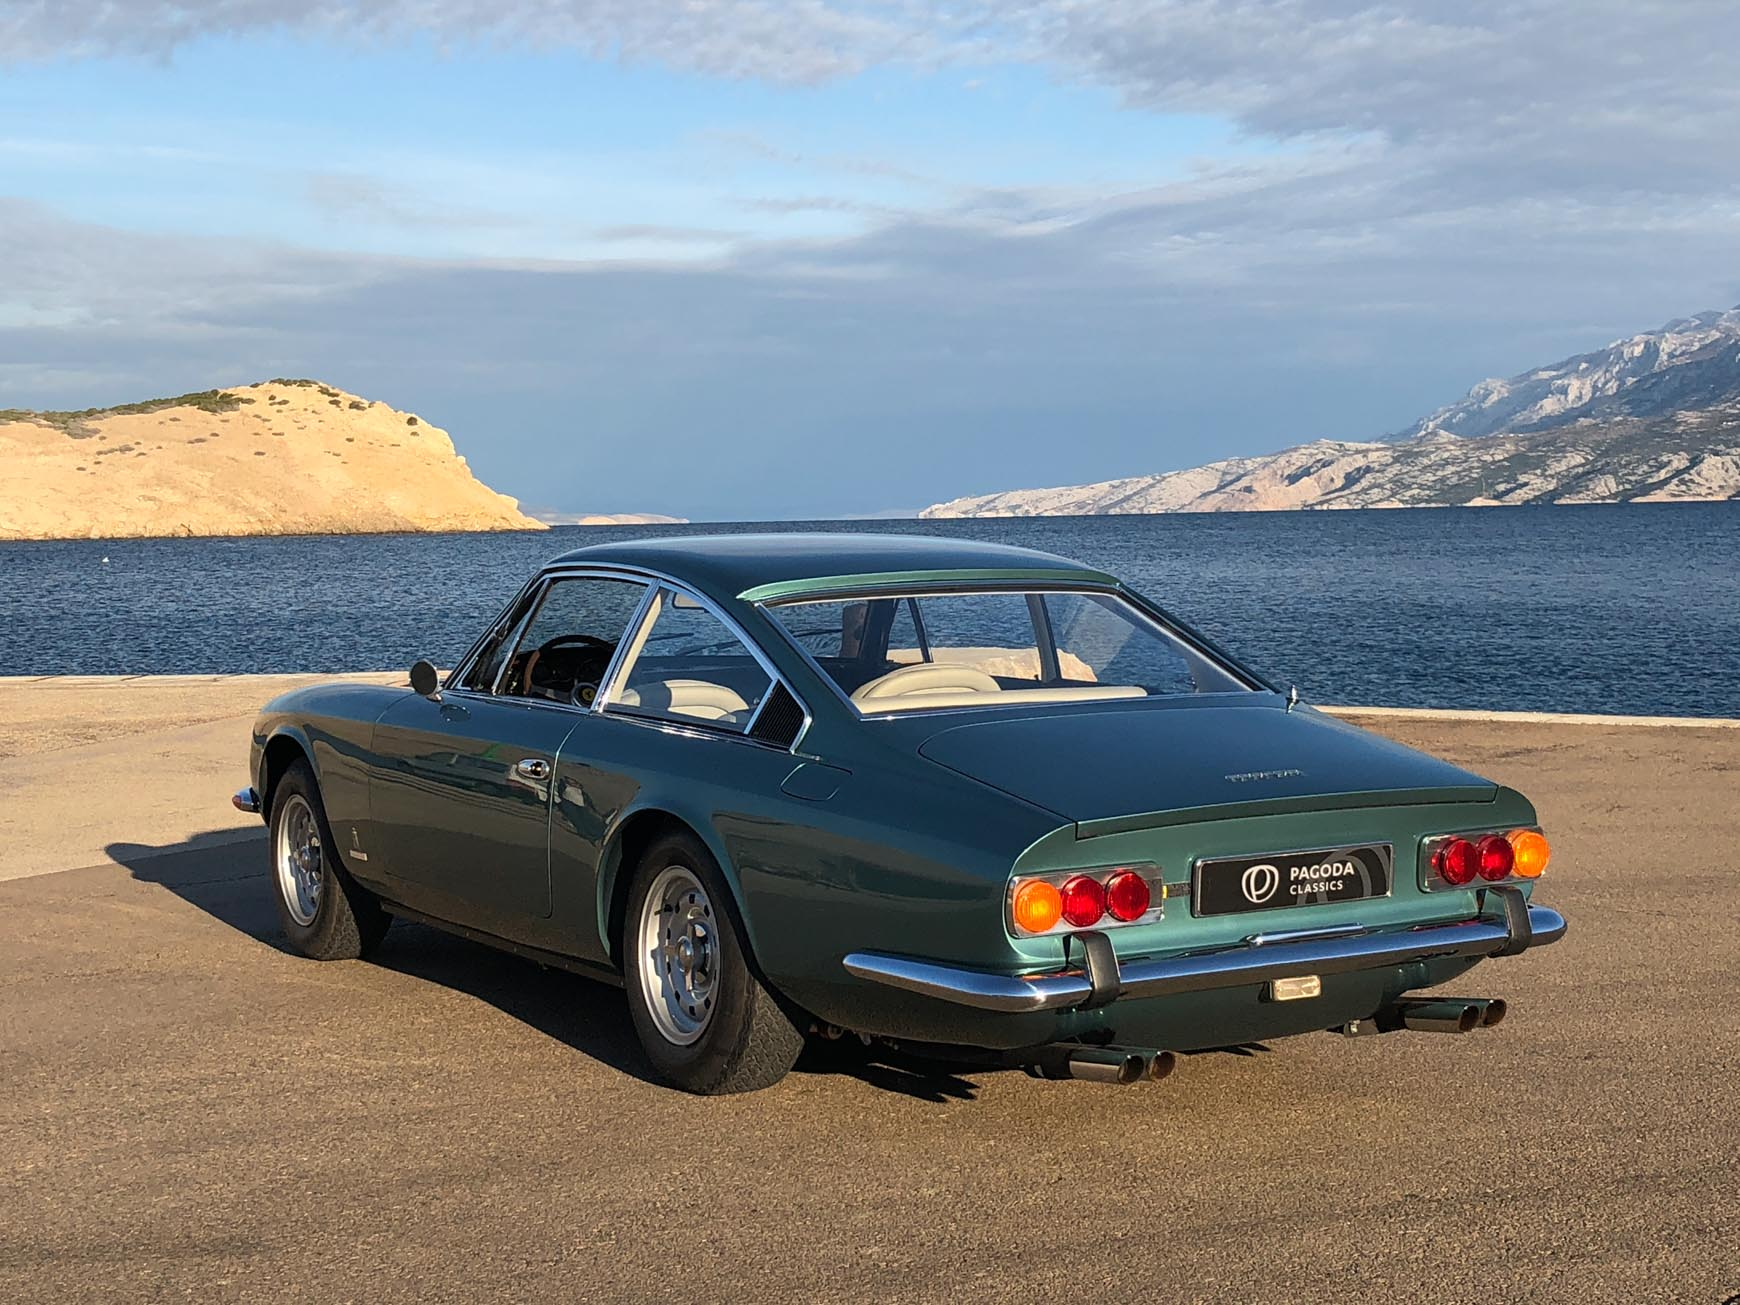 Ferrari 365 GT 2+2 Queen Mary 1969